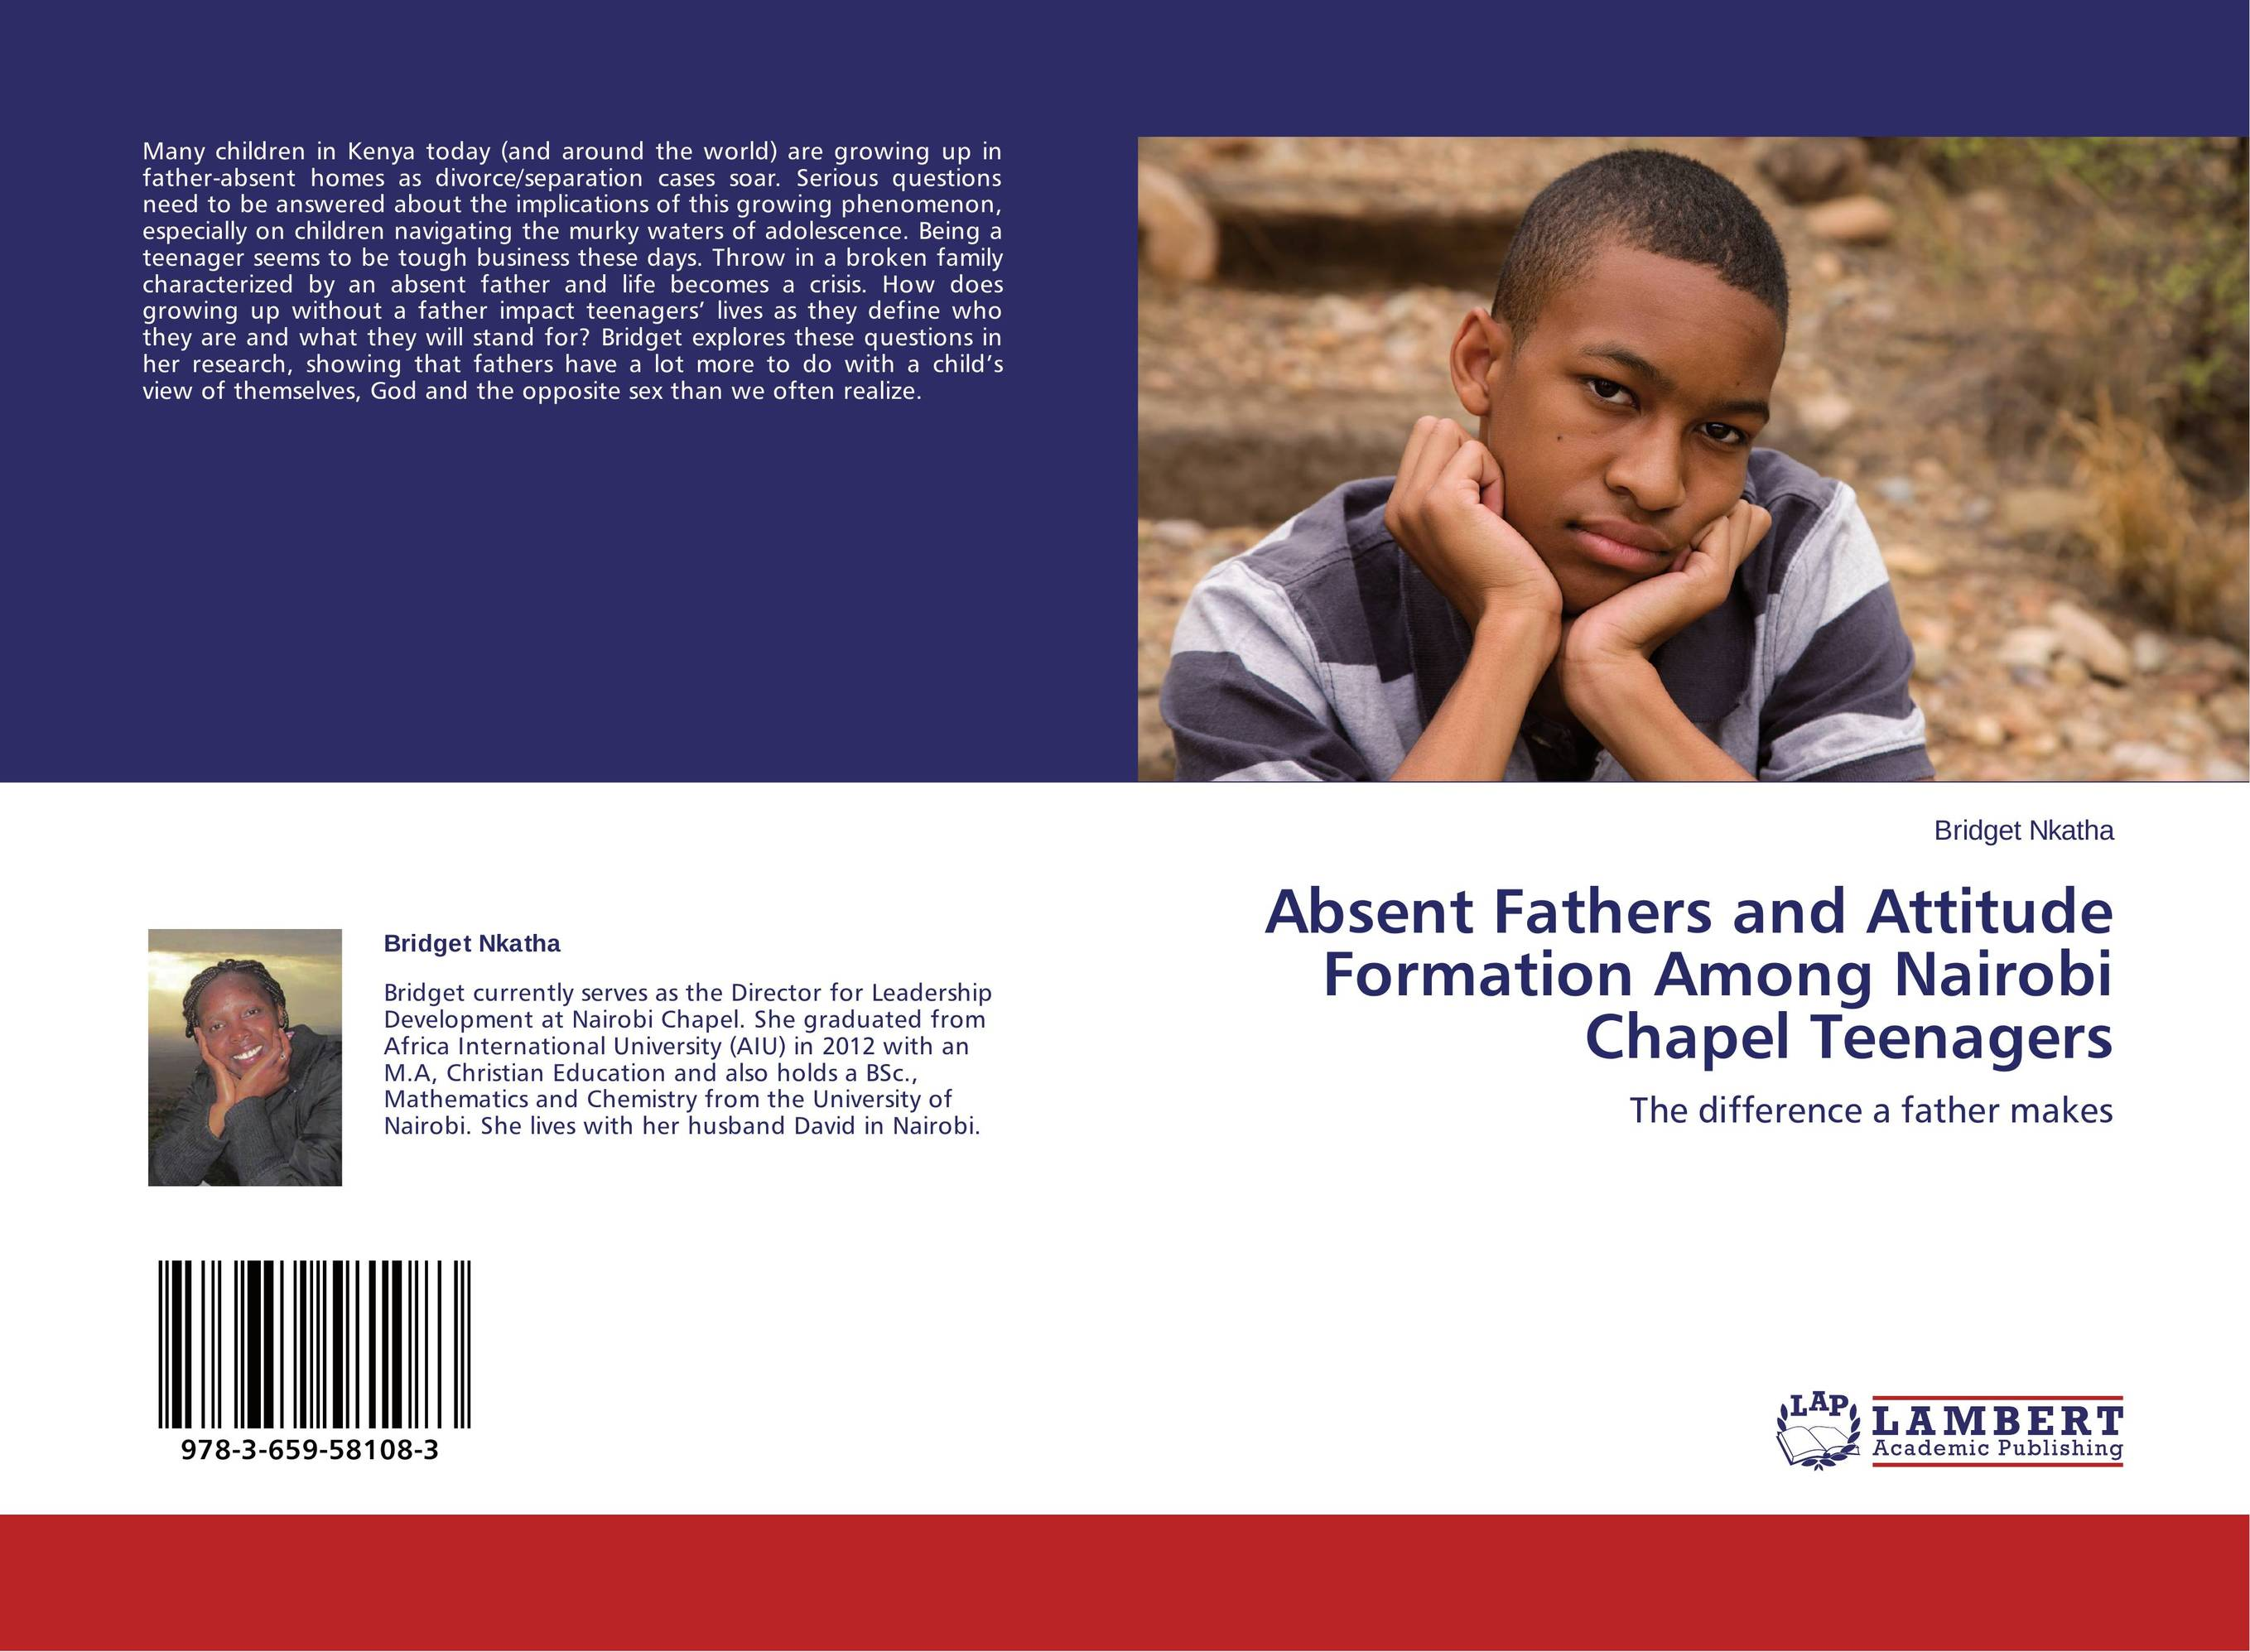 how does fathers absent influence substance use in adolesecent This study explored the influence of father behaviors, such as delinquency, tobacco, alcohol, and mari- absence on self-esteem and the self-reported sexual activity of juana use among m-ban african-american adolescent males.